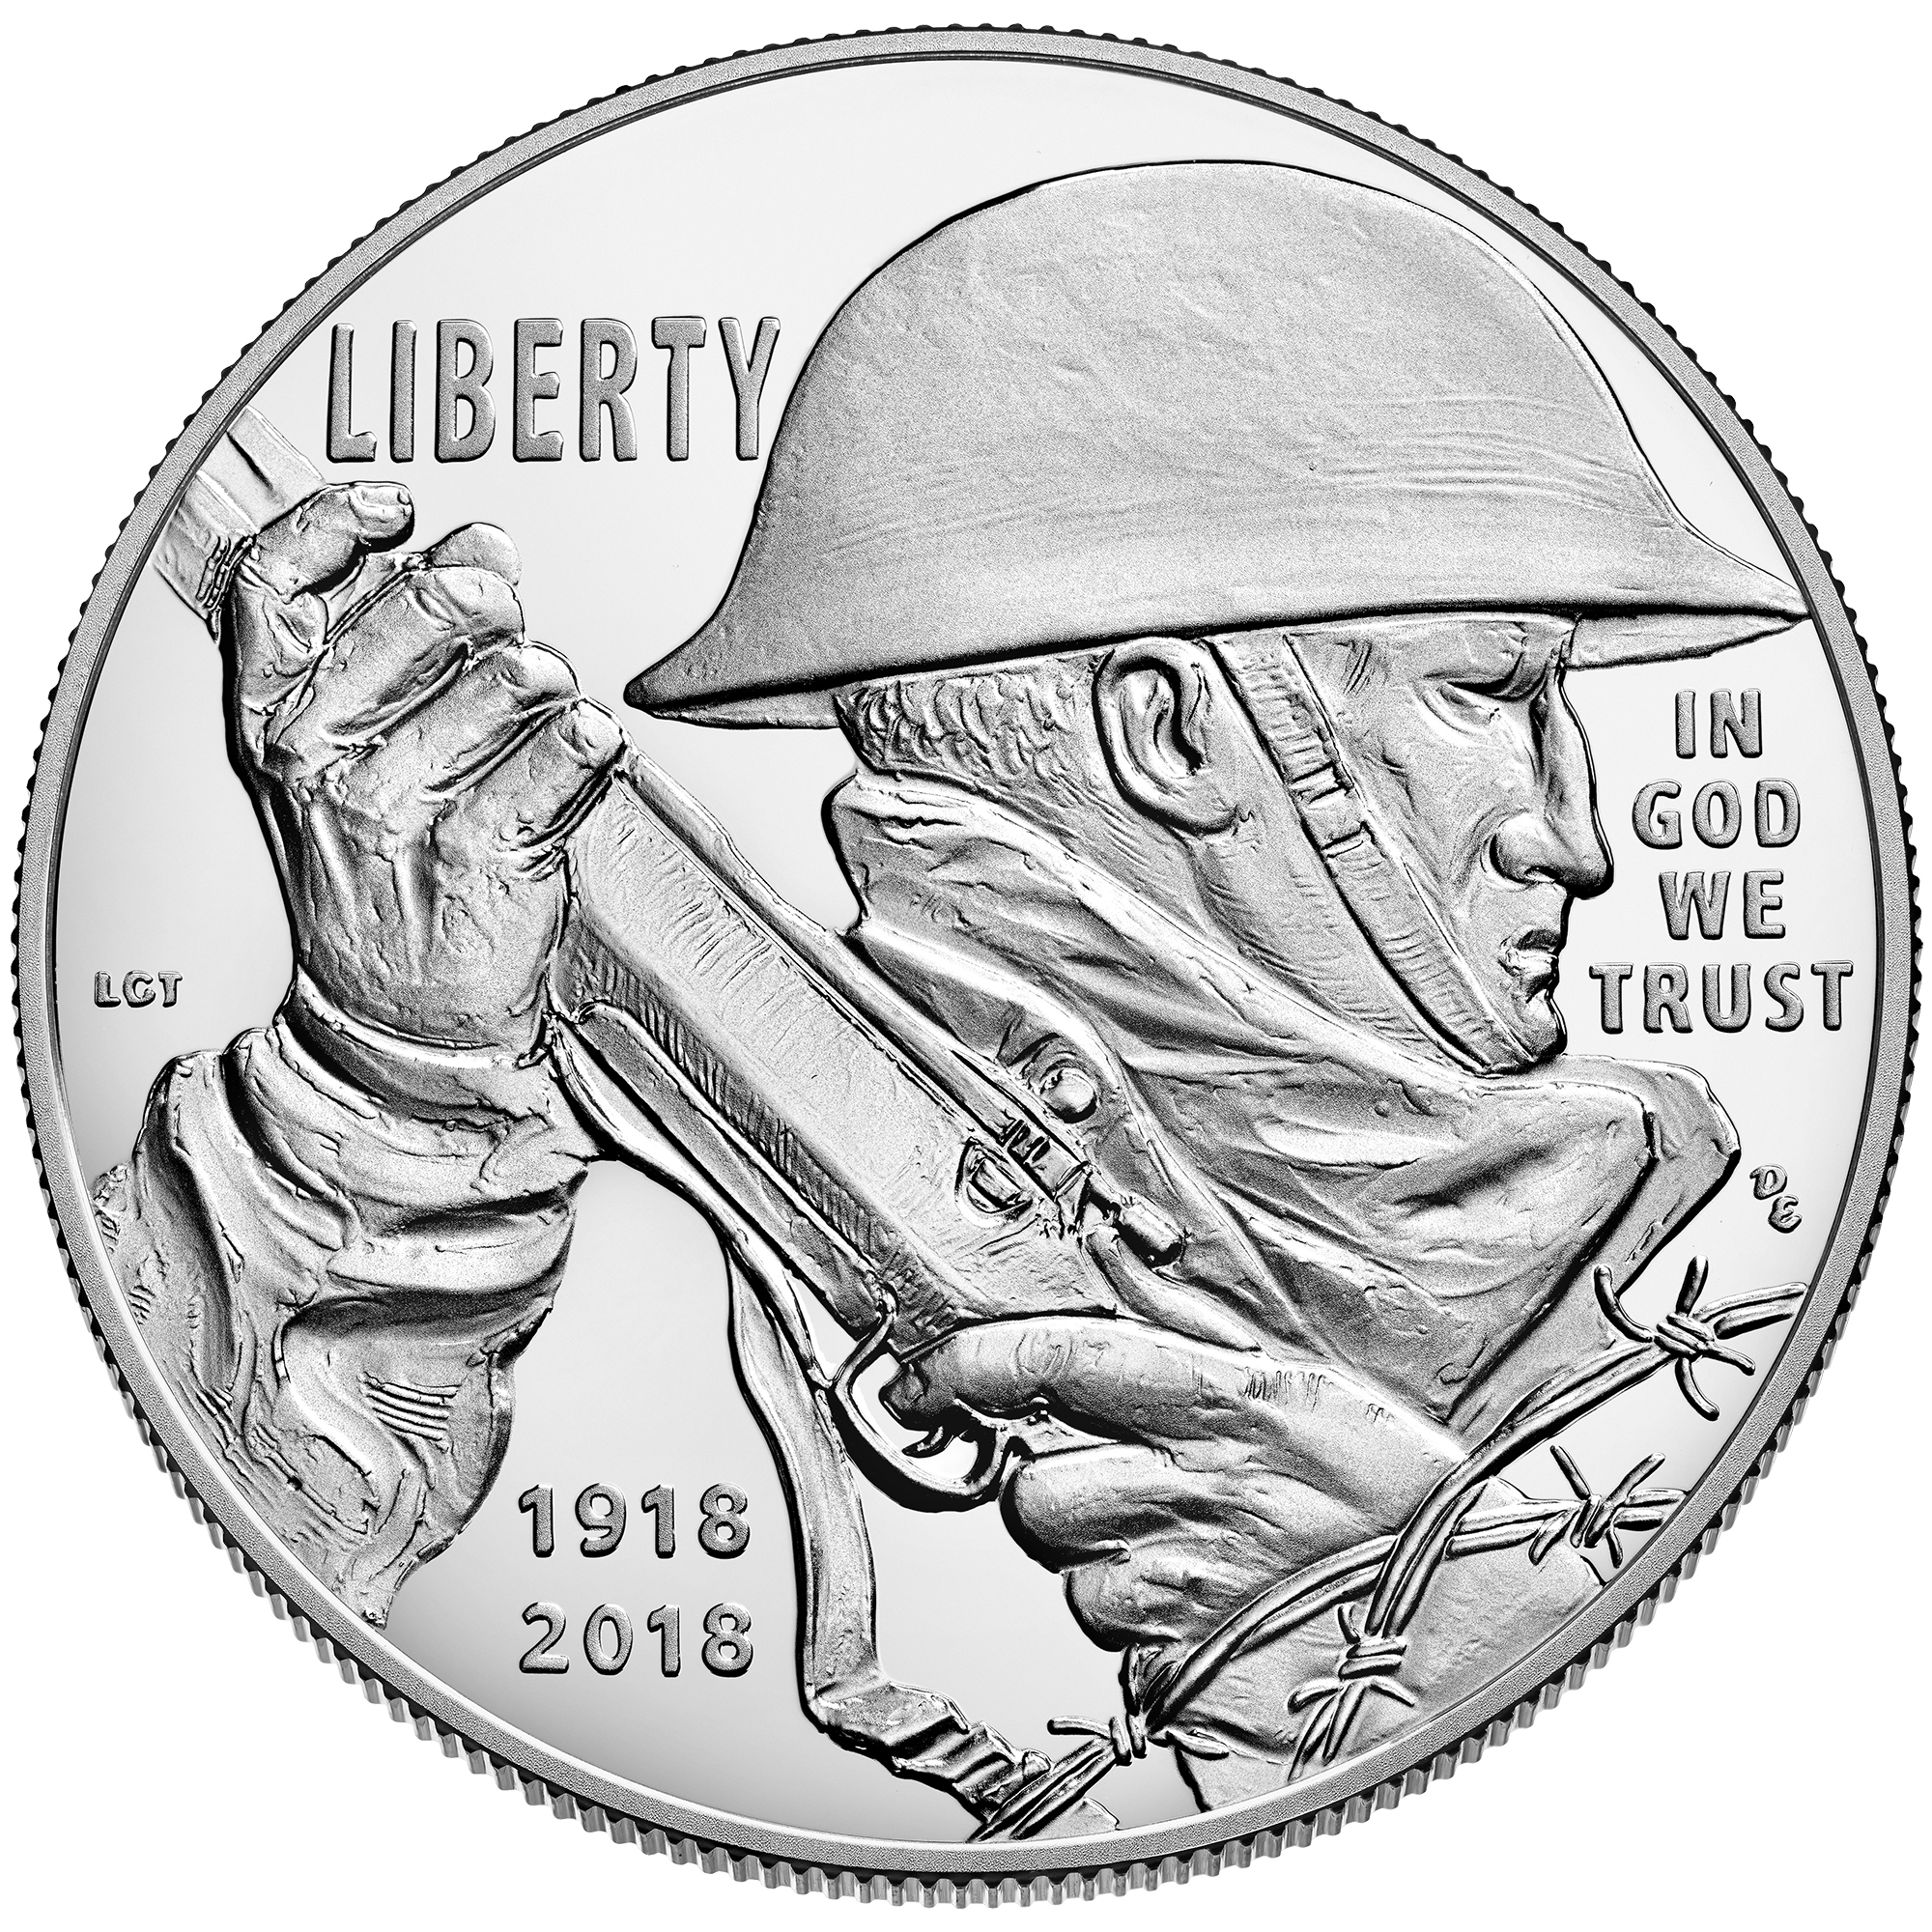 United States 2018 WWI Army Veterans Centennial Silver $1 Commemorative Coin. Image courtesy US Mint